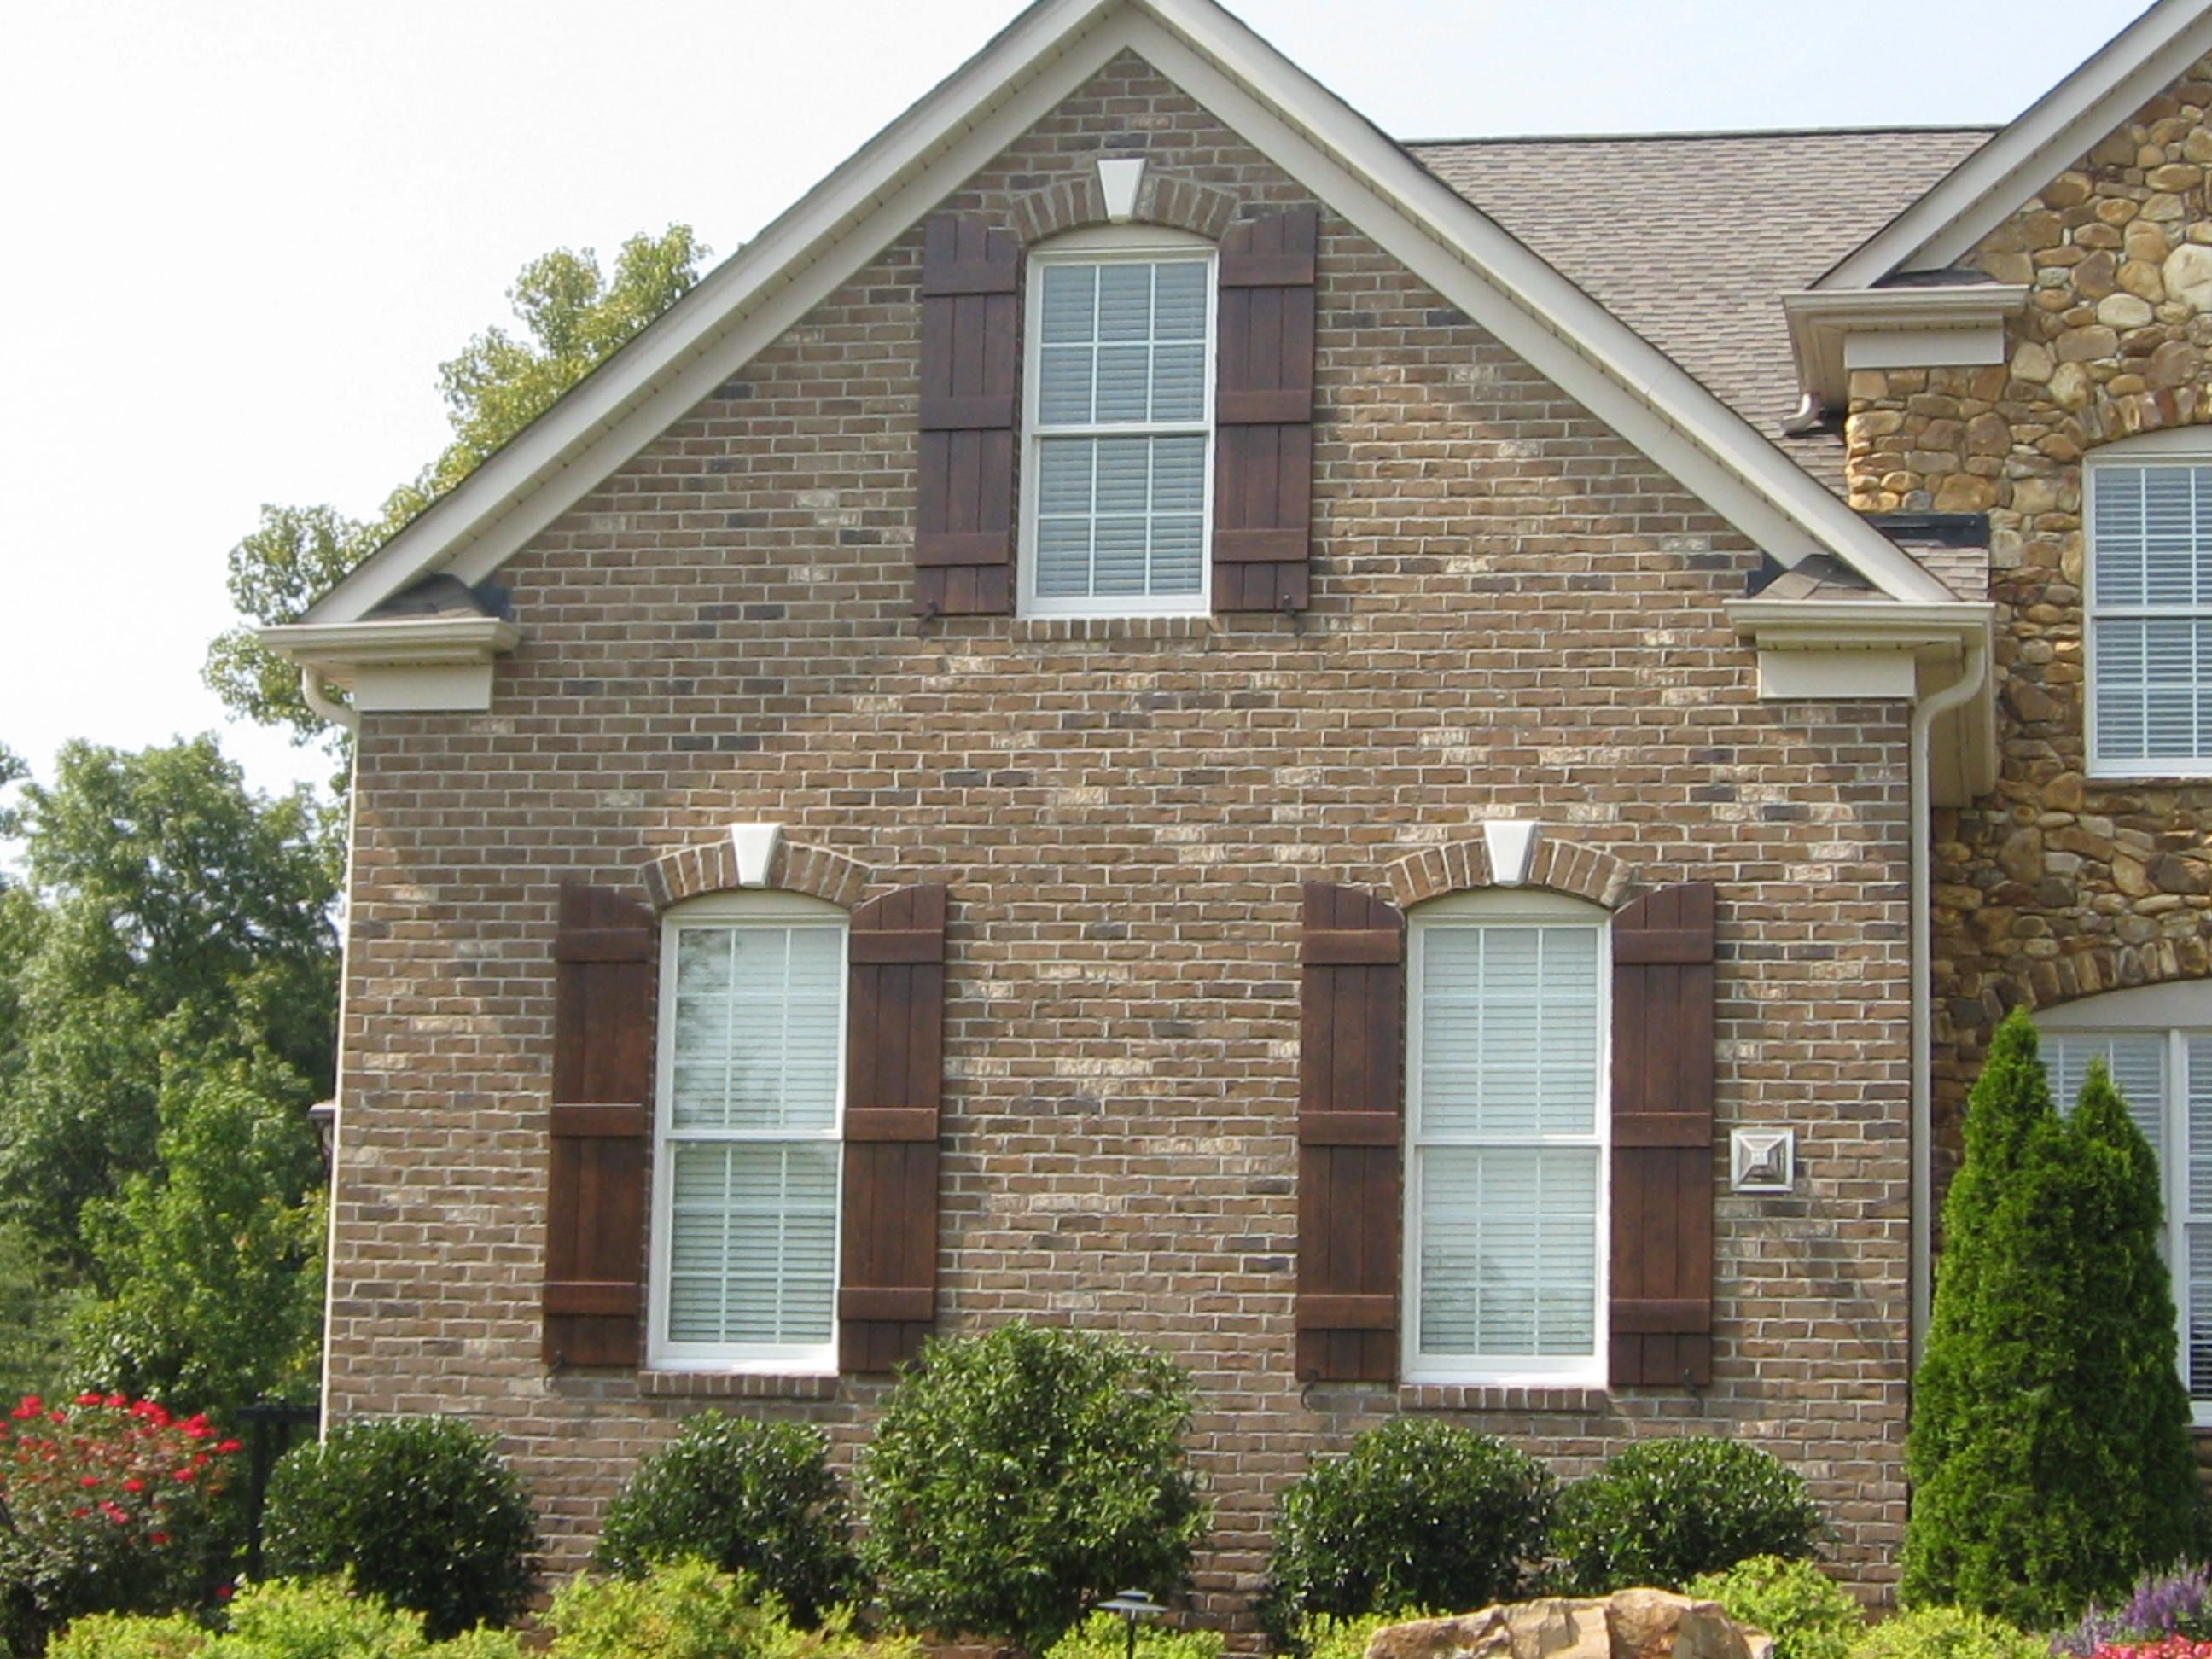 Faux Arched Windows Exterior - Yahoo Image Search Results | House ...